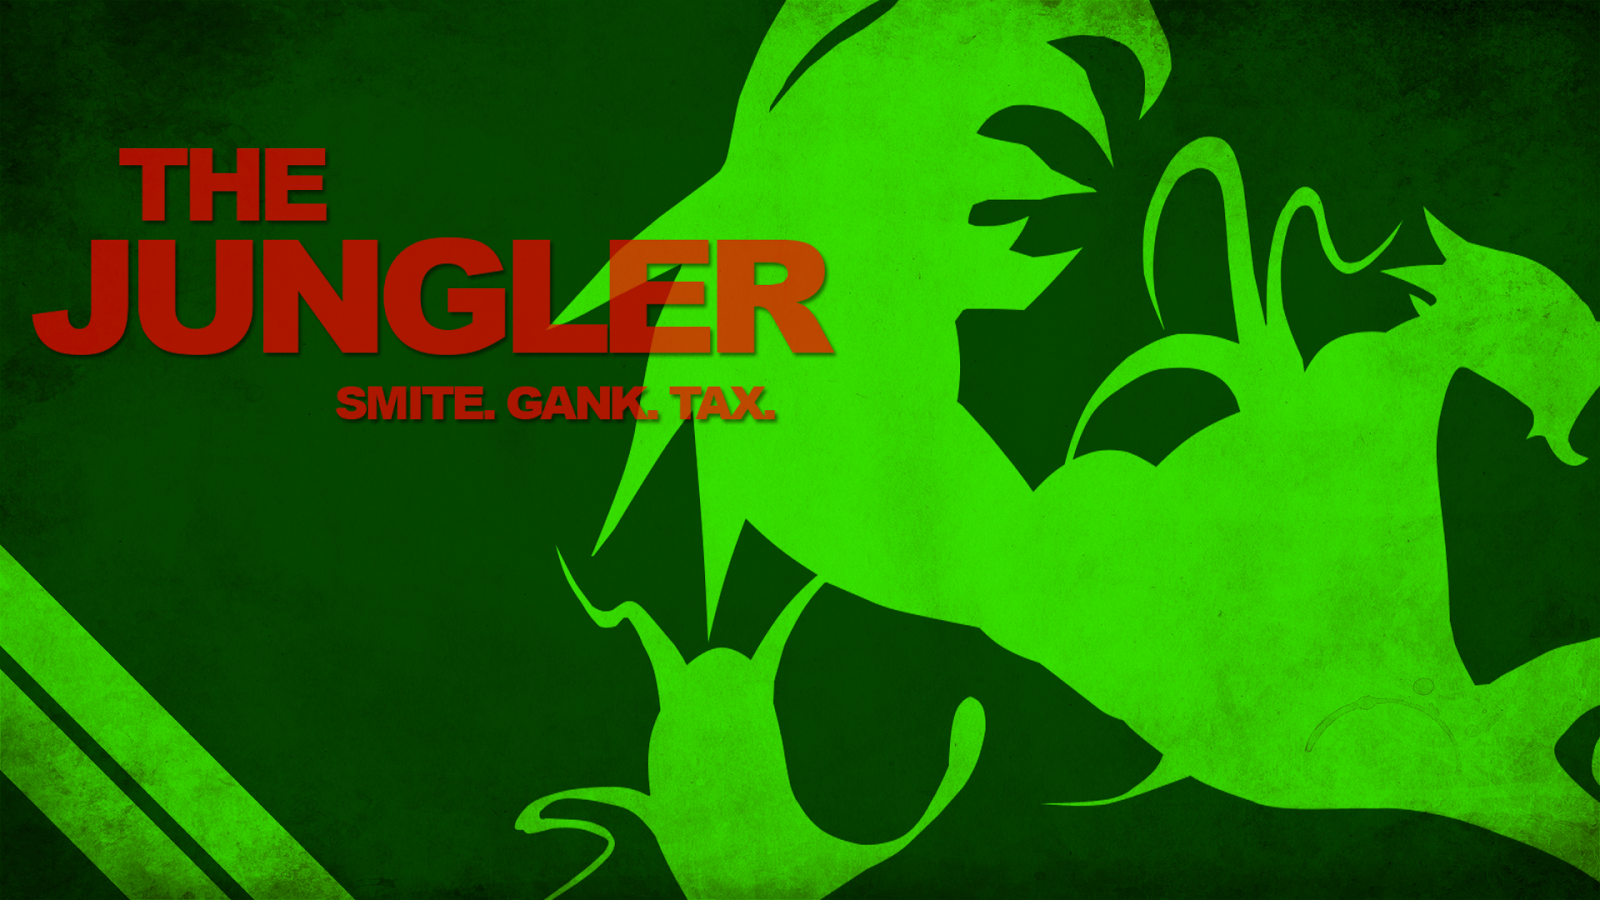 Lol Jungler Wallpaper in Fact to be a Jungler is a